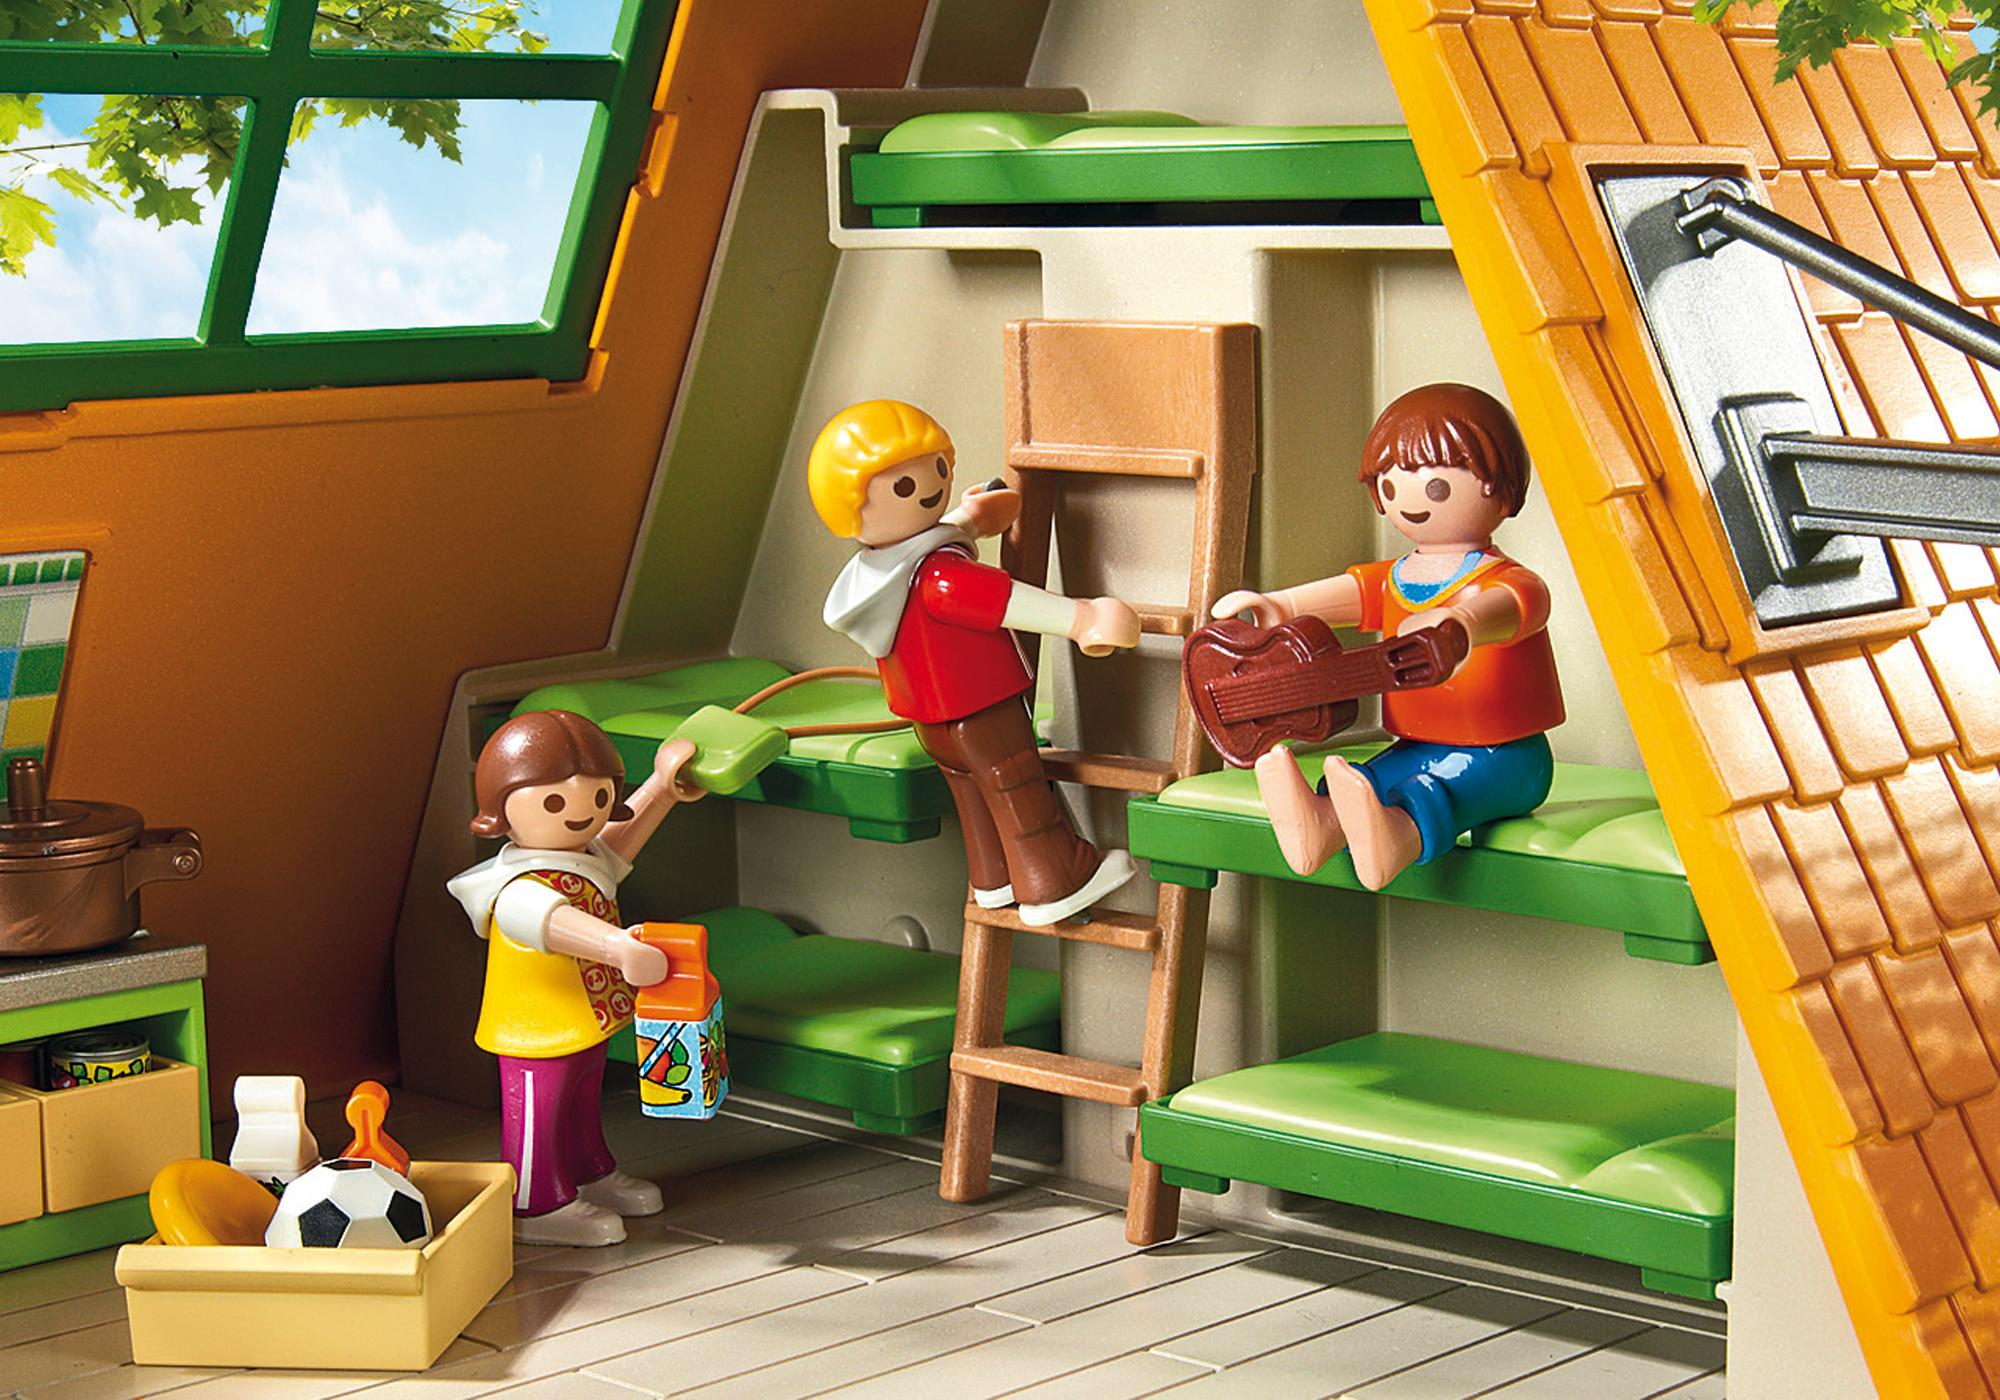 http://media.playmobil.com/i/playmobil/6887_product_extra2